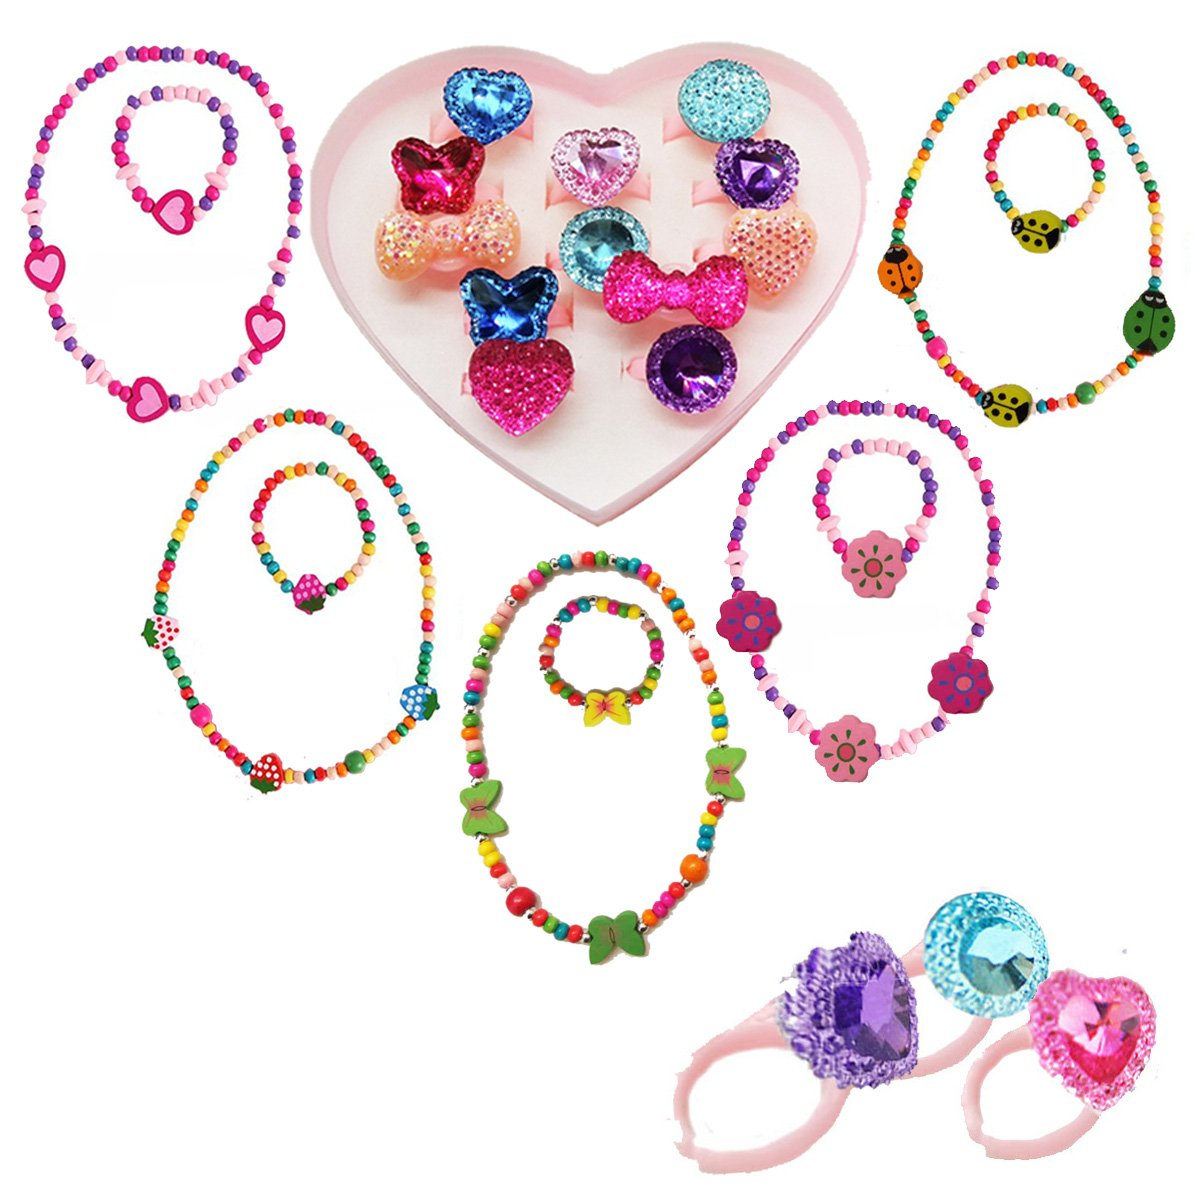 IDOXE 17pcs Value Set Little Girl Jewelry Set, Wood Stretch Necklace Bracelet with Crystal Rings Heart Box